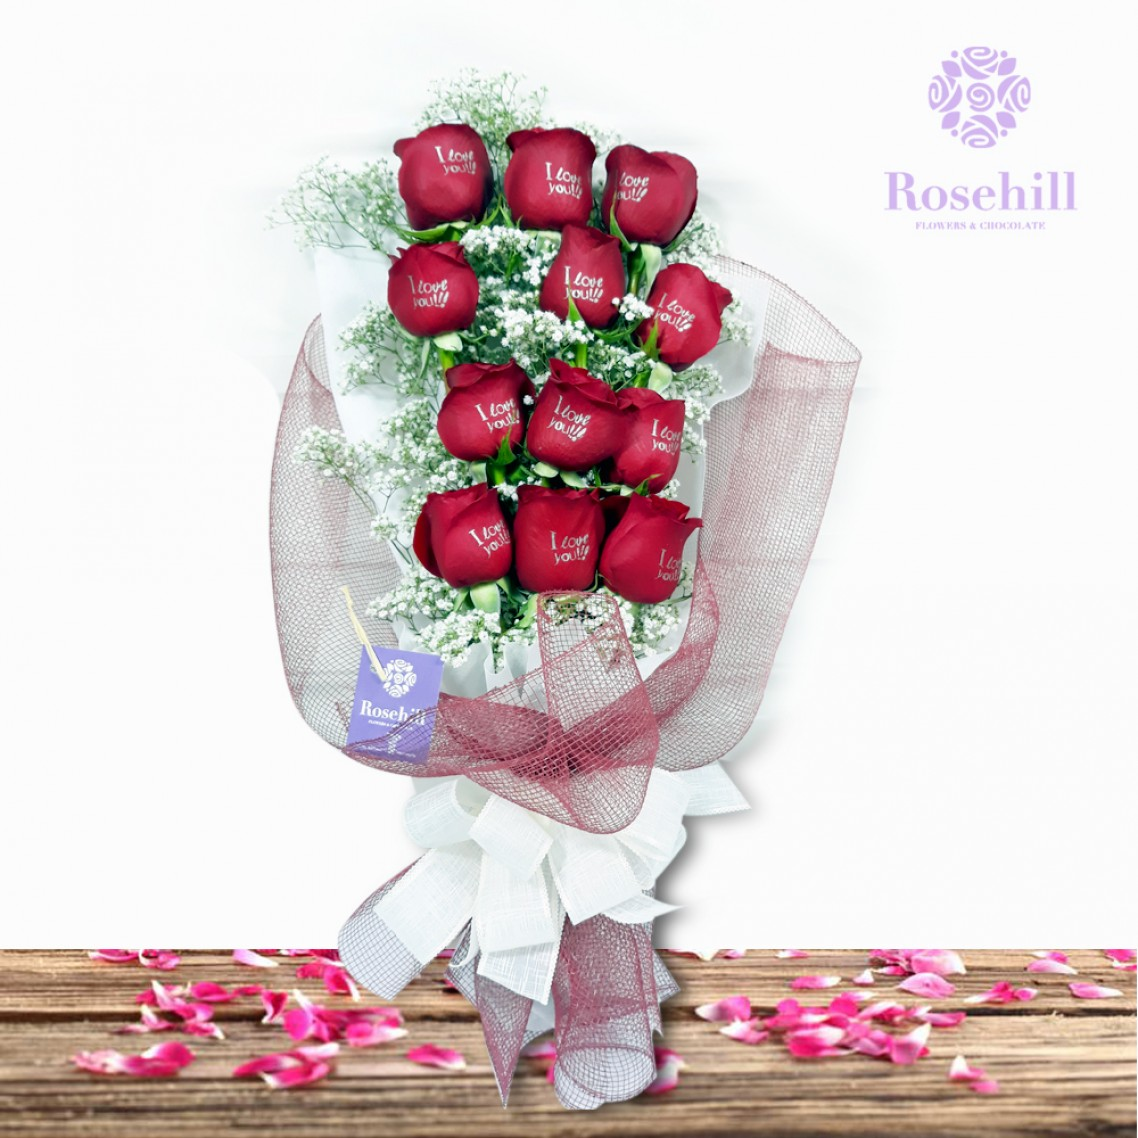 1524671978-h-250-_Rosehill's I Love You Bouquet with Babys Breath- Red.jpg